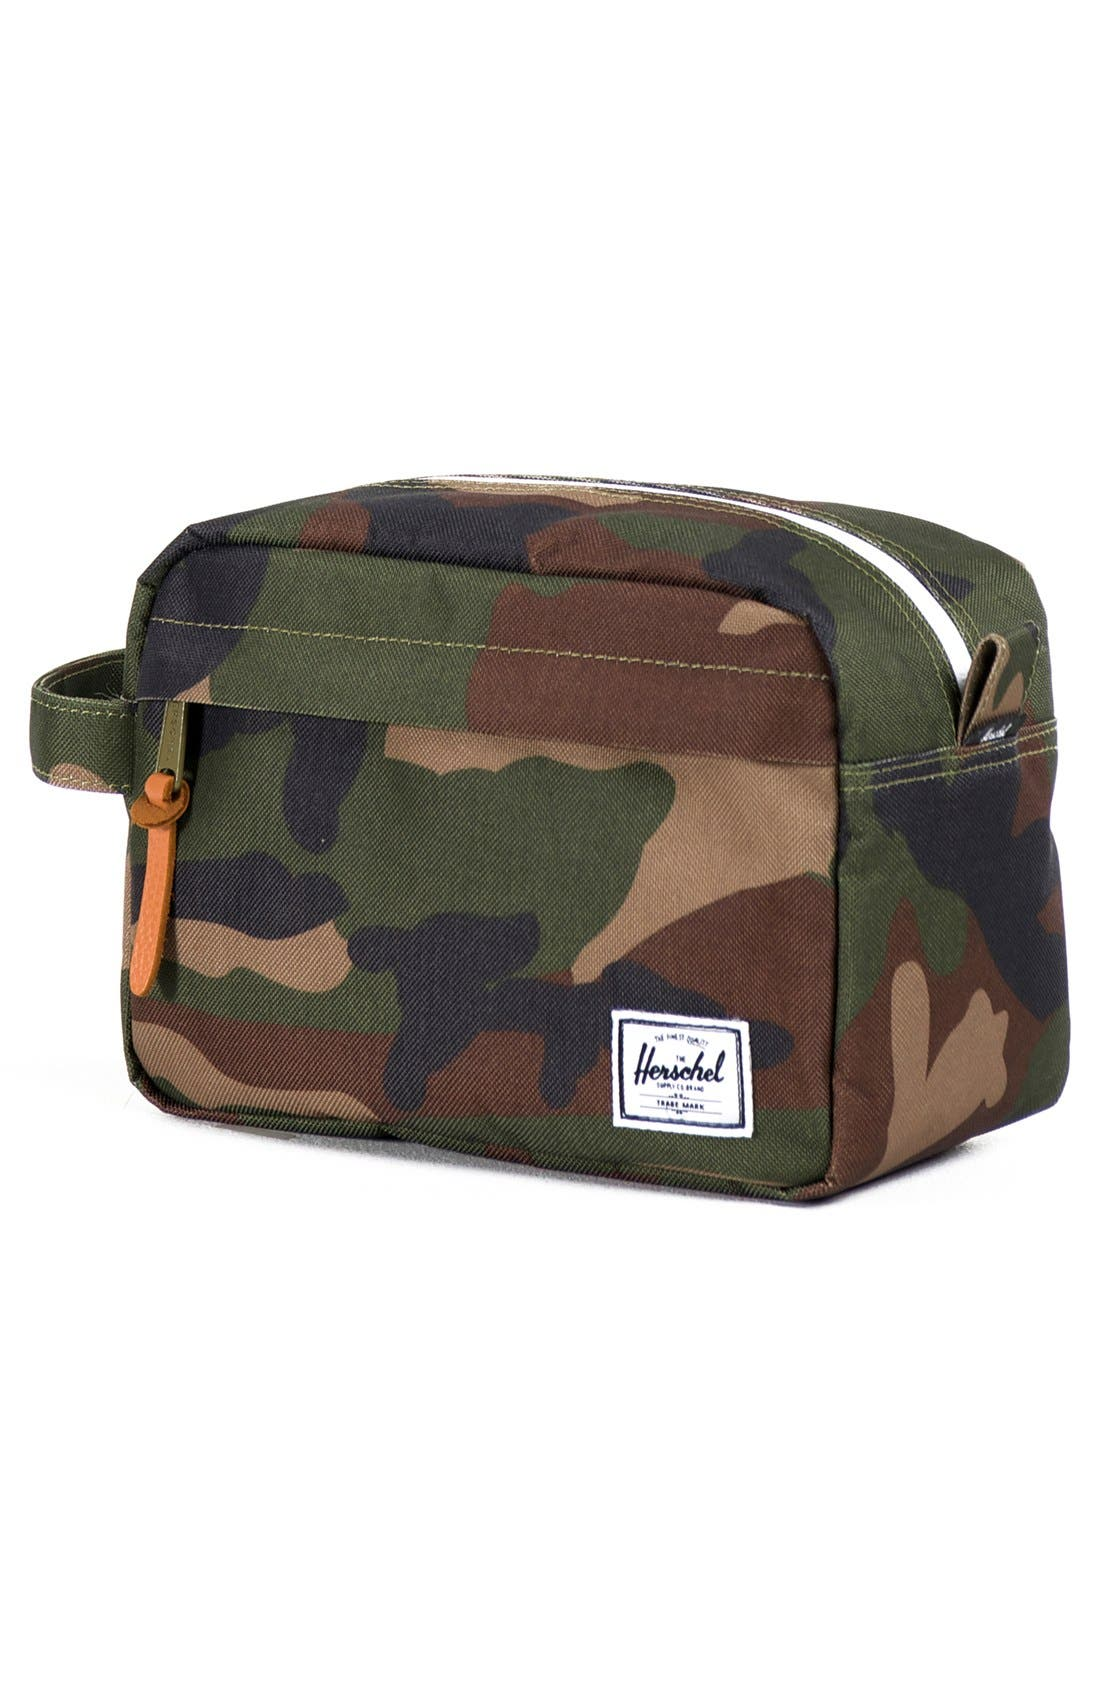 'Chapter' Toiletry Case,                             Alternate thumbnail 2, color,                             WOODLAND CAMO